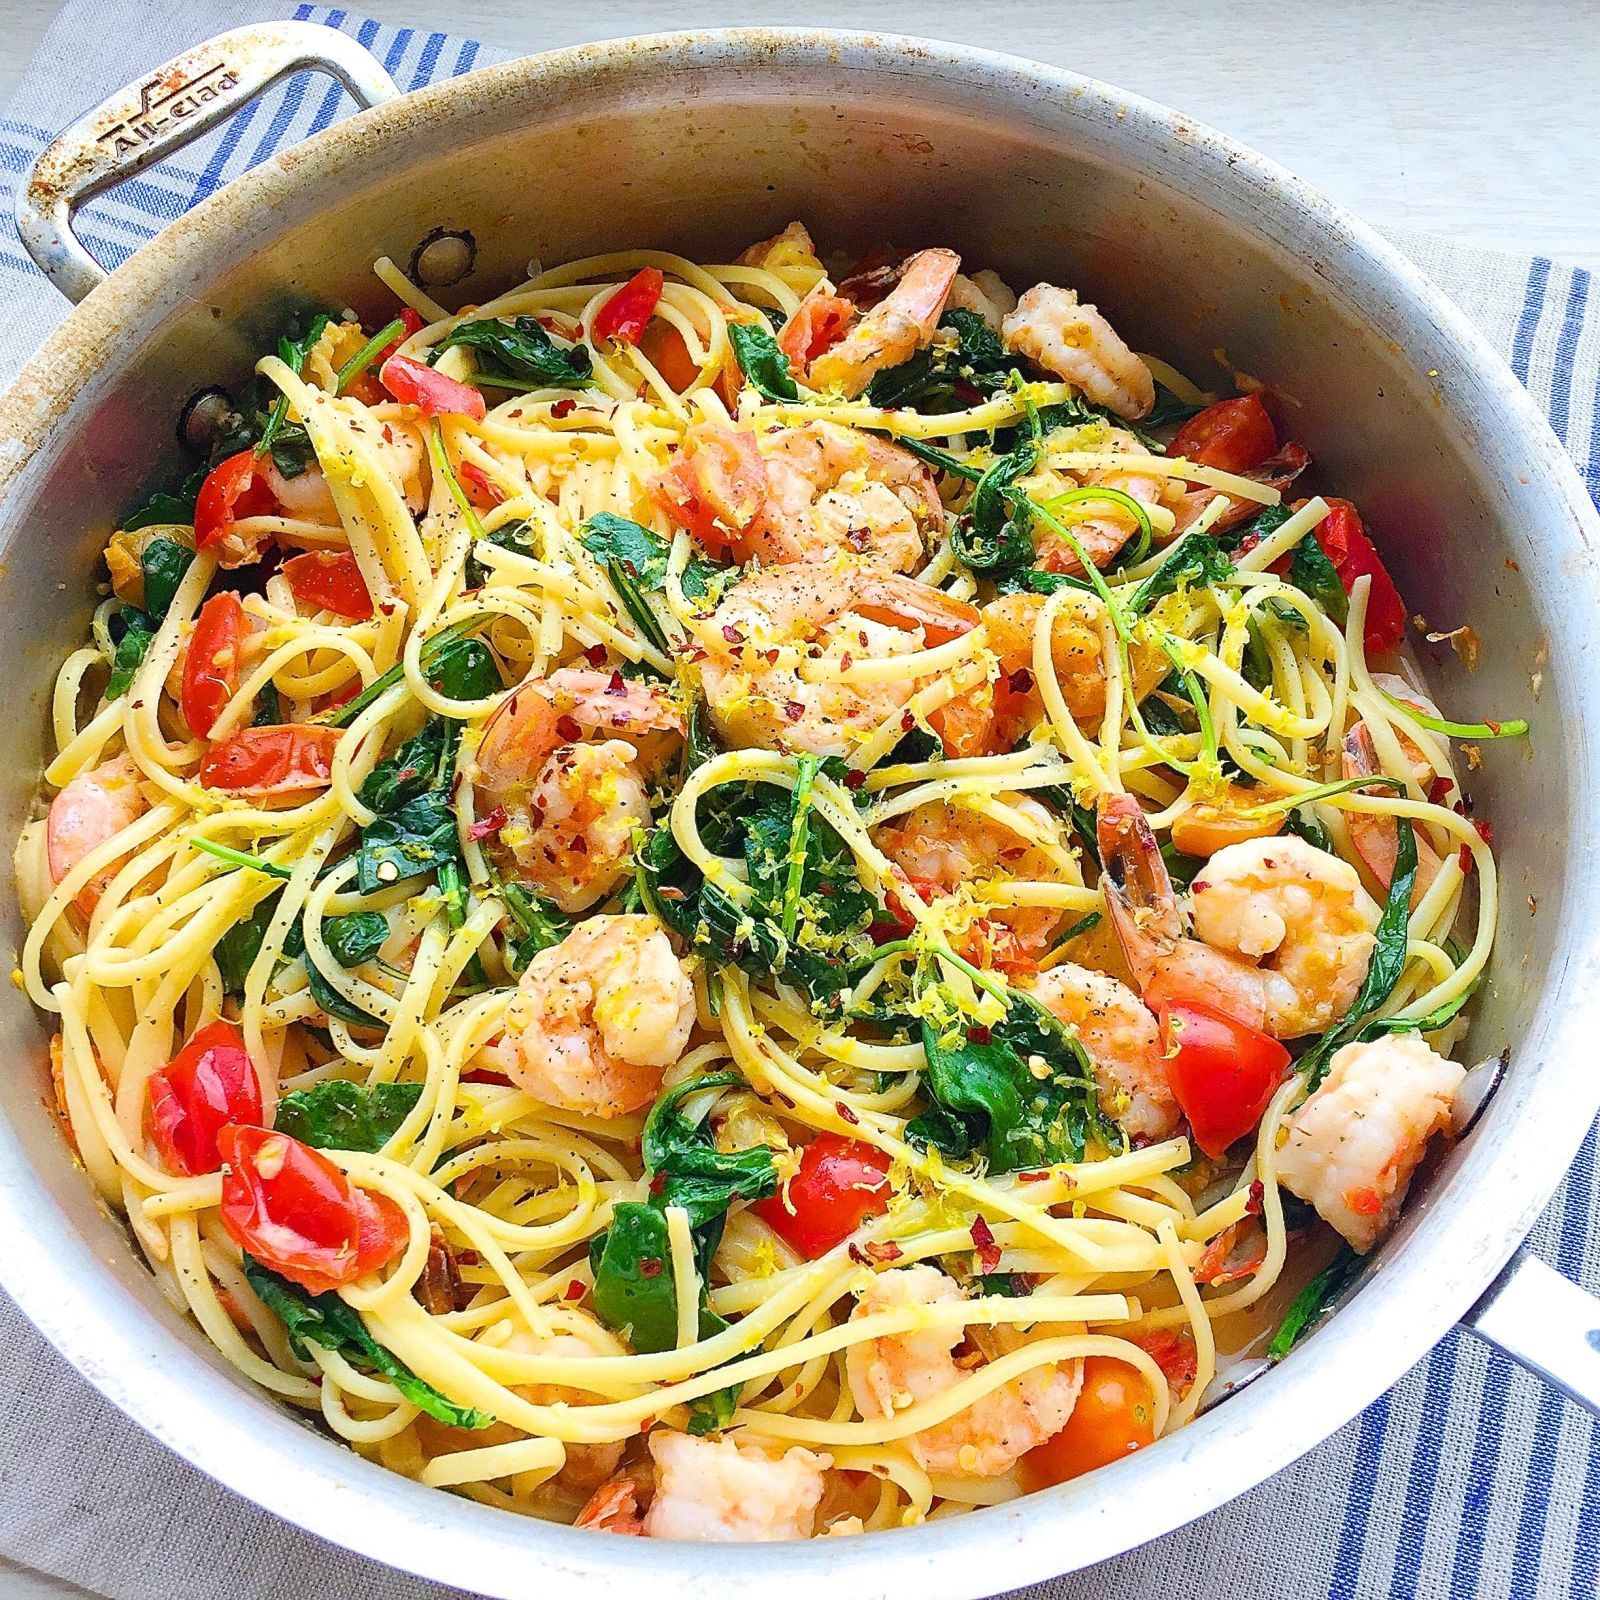 30 Easy Shrimp Recipes For Weeknight Dinners: Insanely Easy Weeknight Dinners To Try This Week